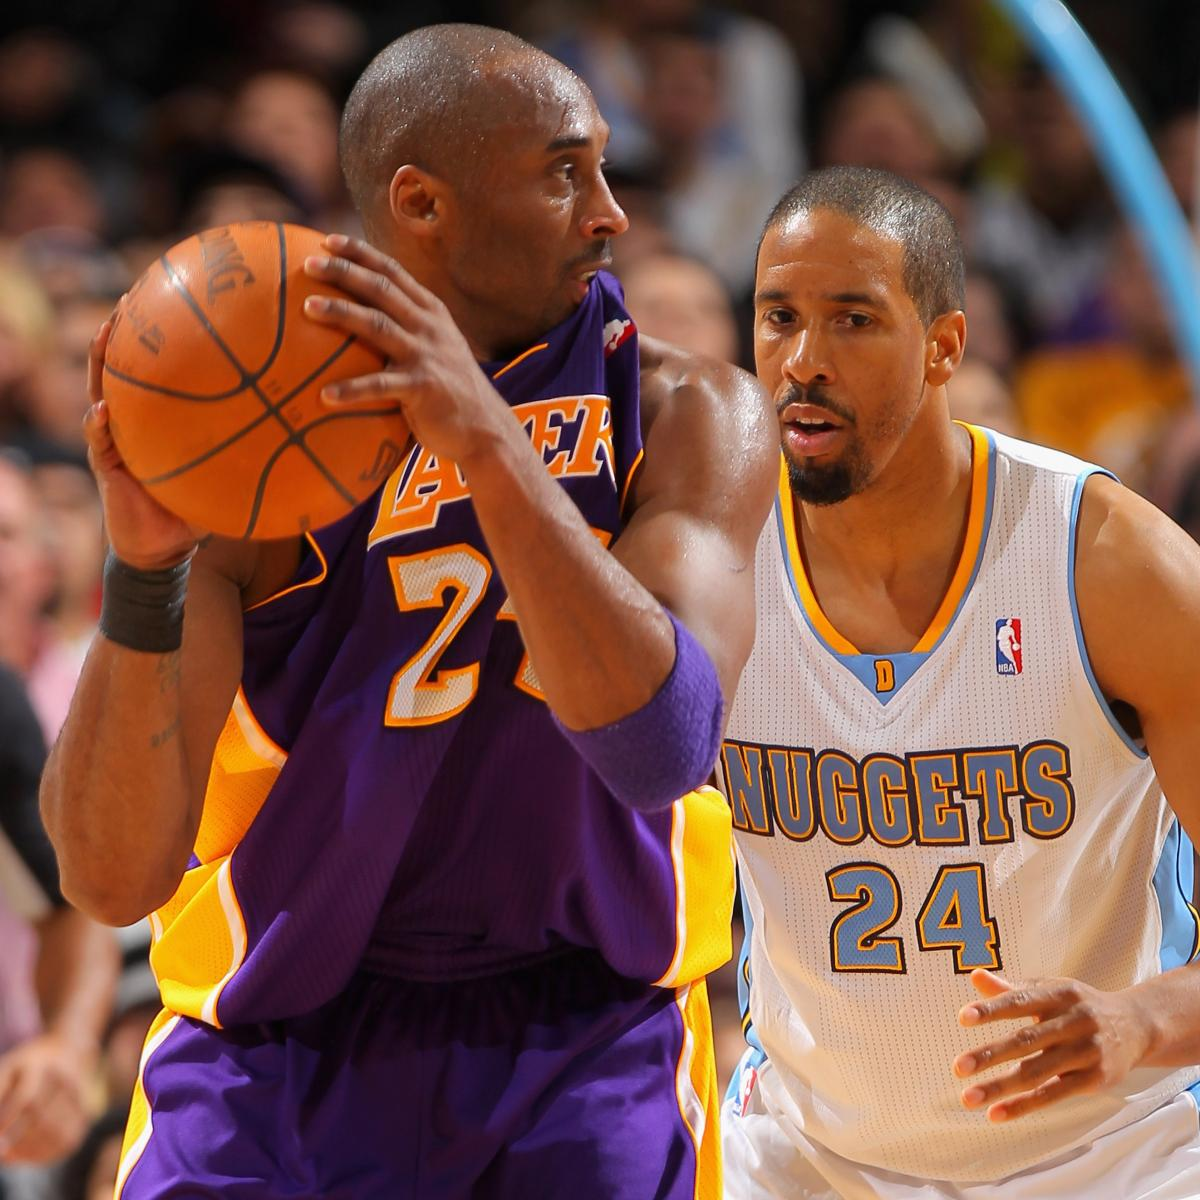 Nuggets Vs. Lakers: TV Schedule, Live Stream, Odds And